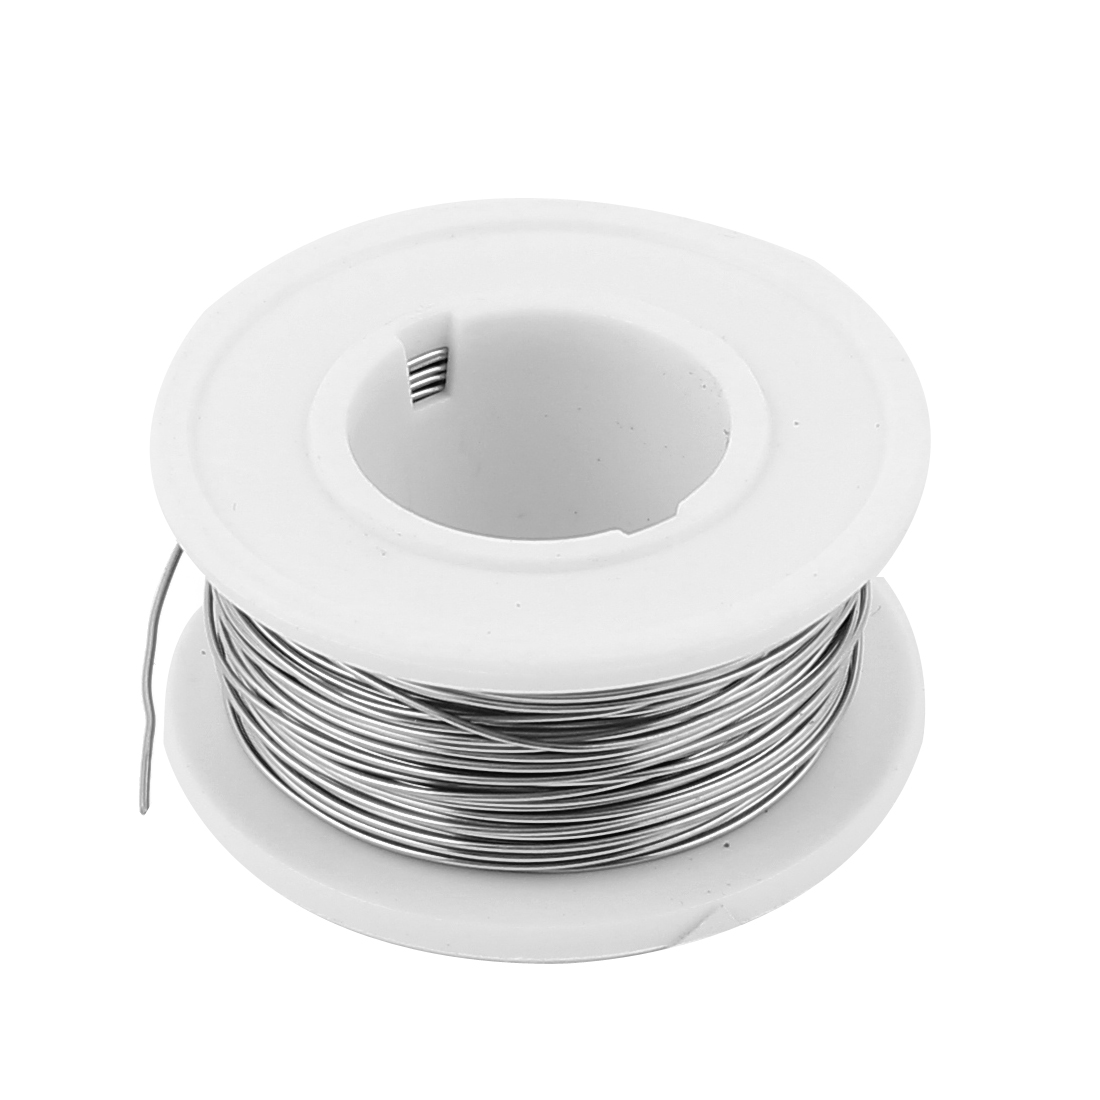 UXCELL Nichrome 80 Round Wire 0.5Mm 24Gauge Awg 82.02Ft Roll 5.551Ohm/M Resistance<br><br>Aliexpress